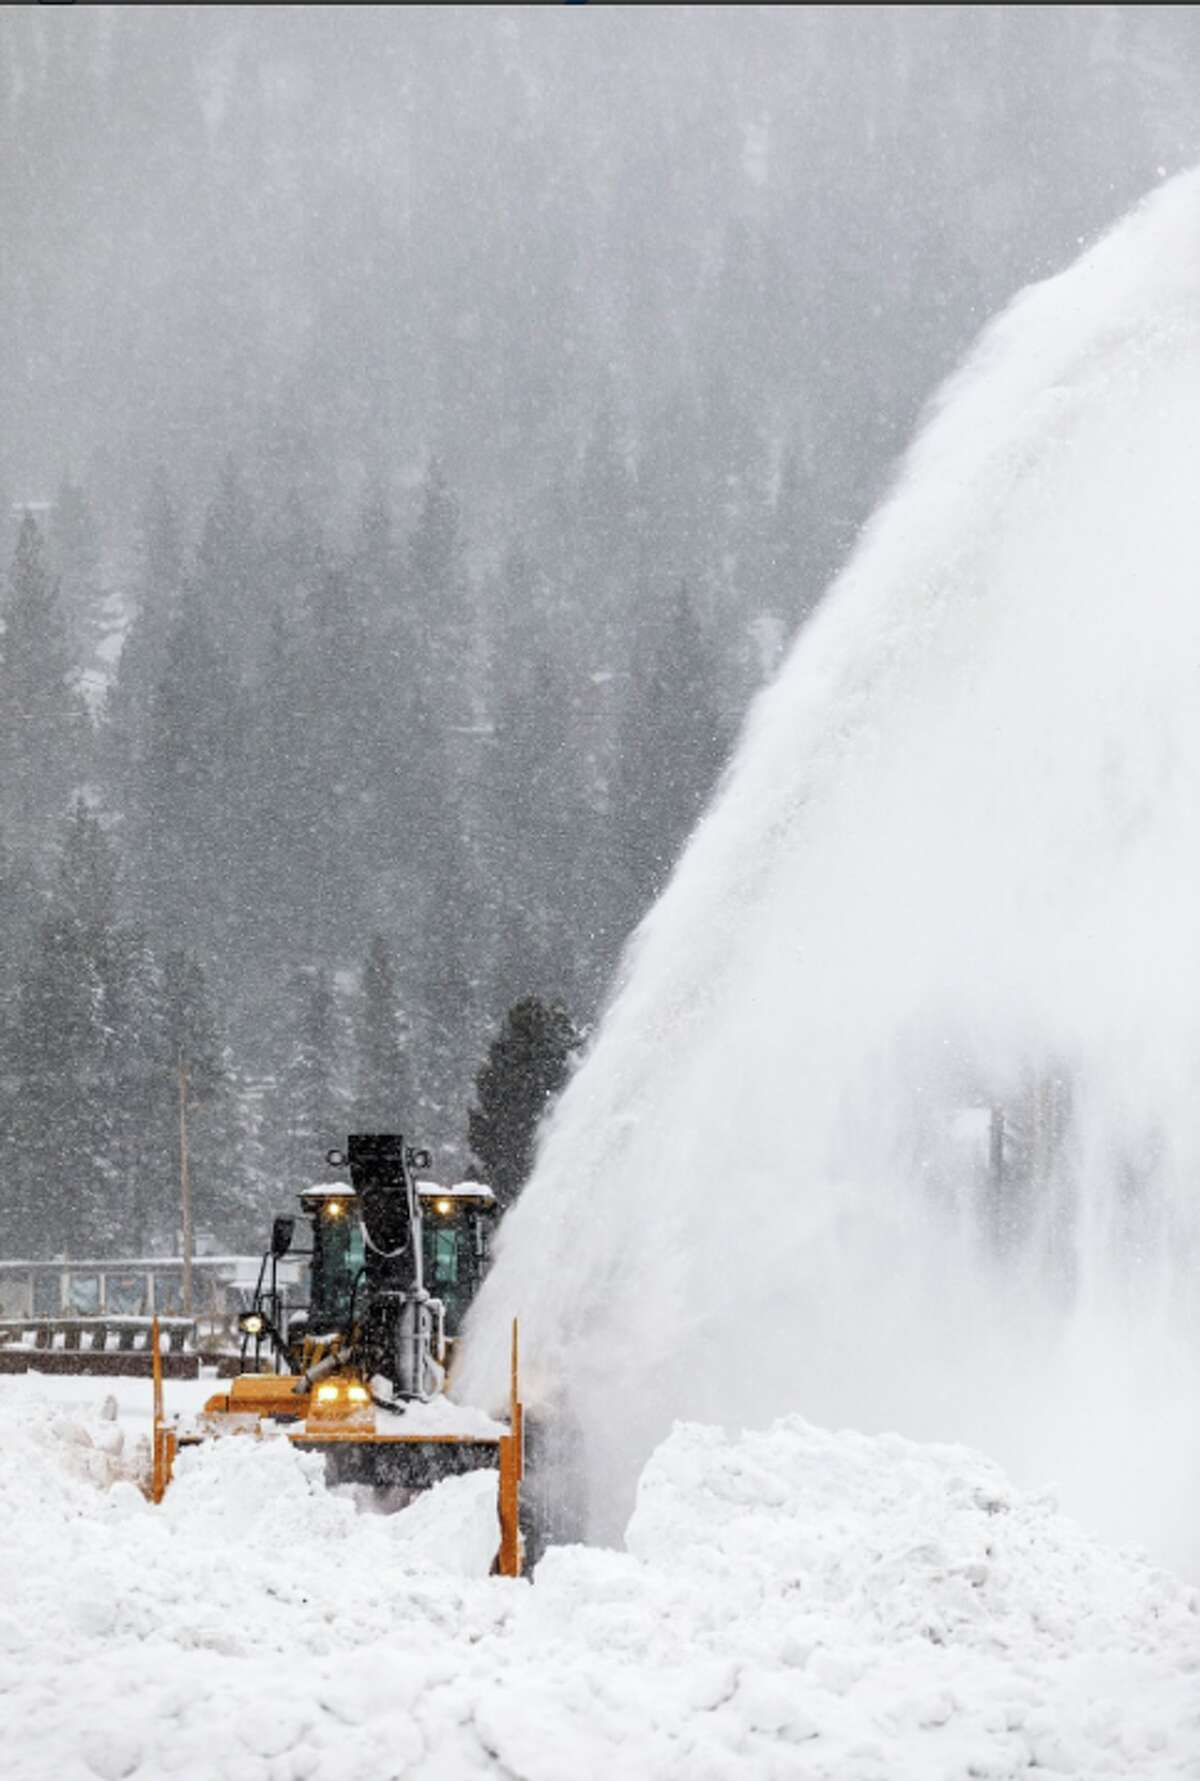 Squaw Valley performs avalanche control and prepares ski slopes on Jan. 7, 2018, after a major snow dump.